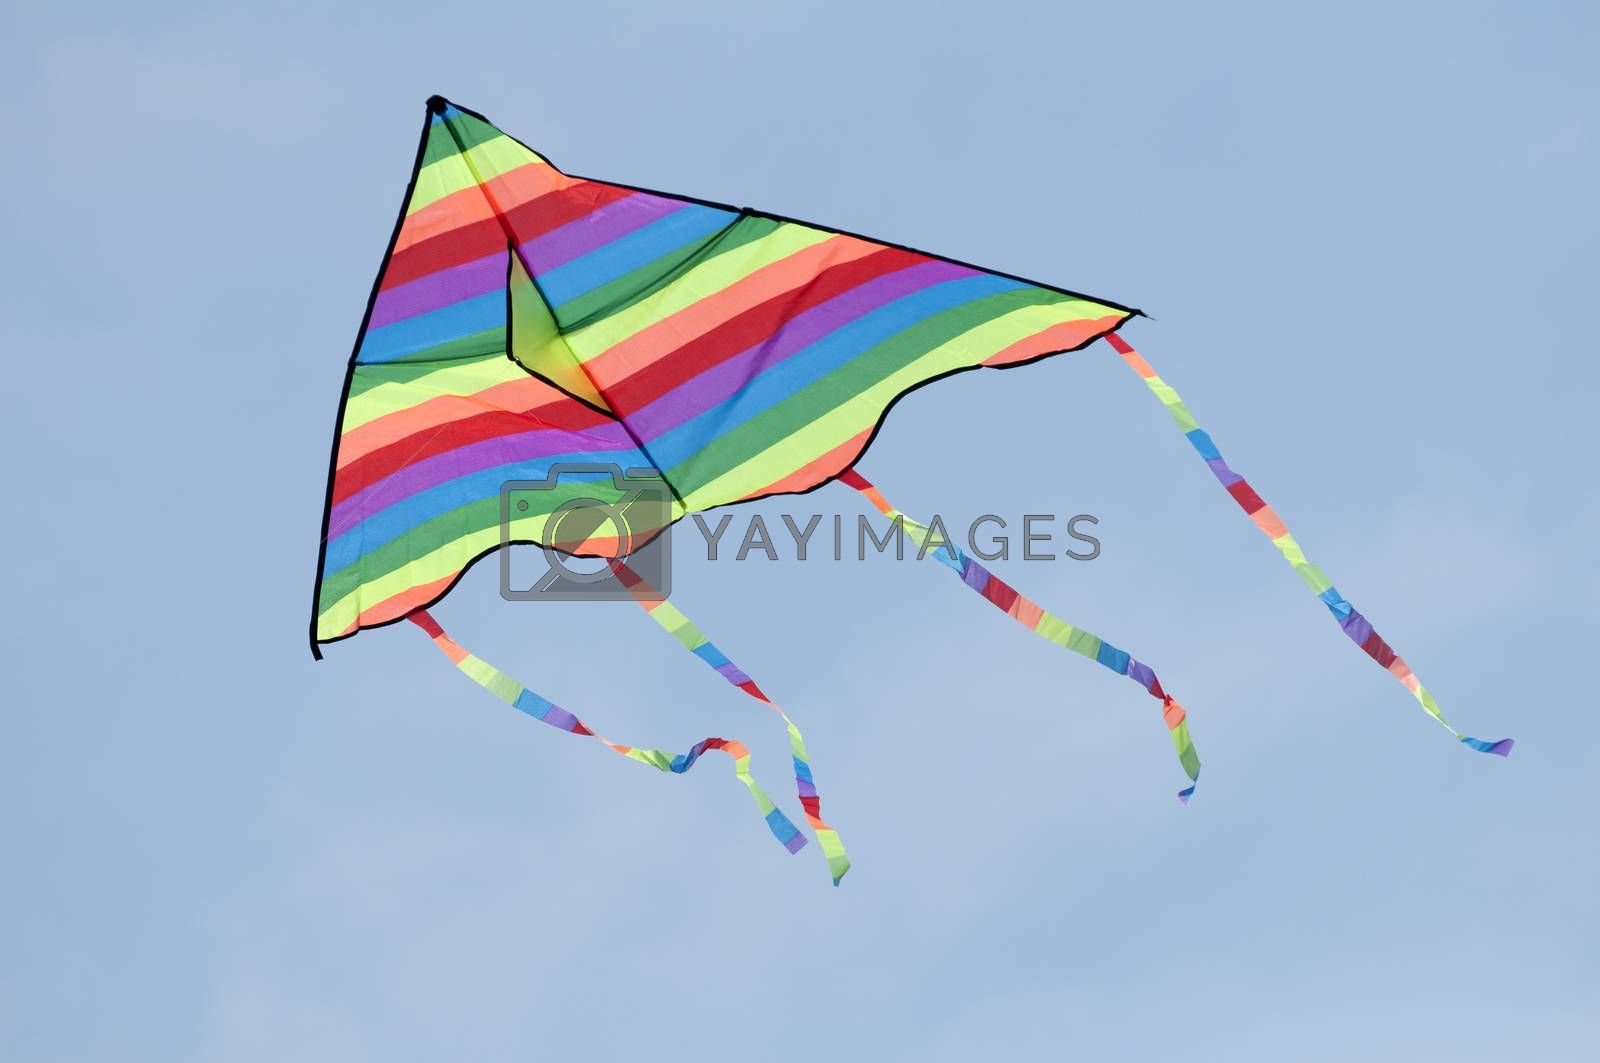 Multicolored kite on blue sky background